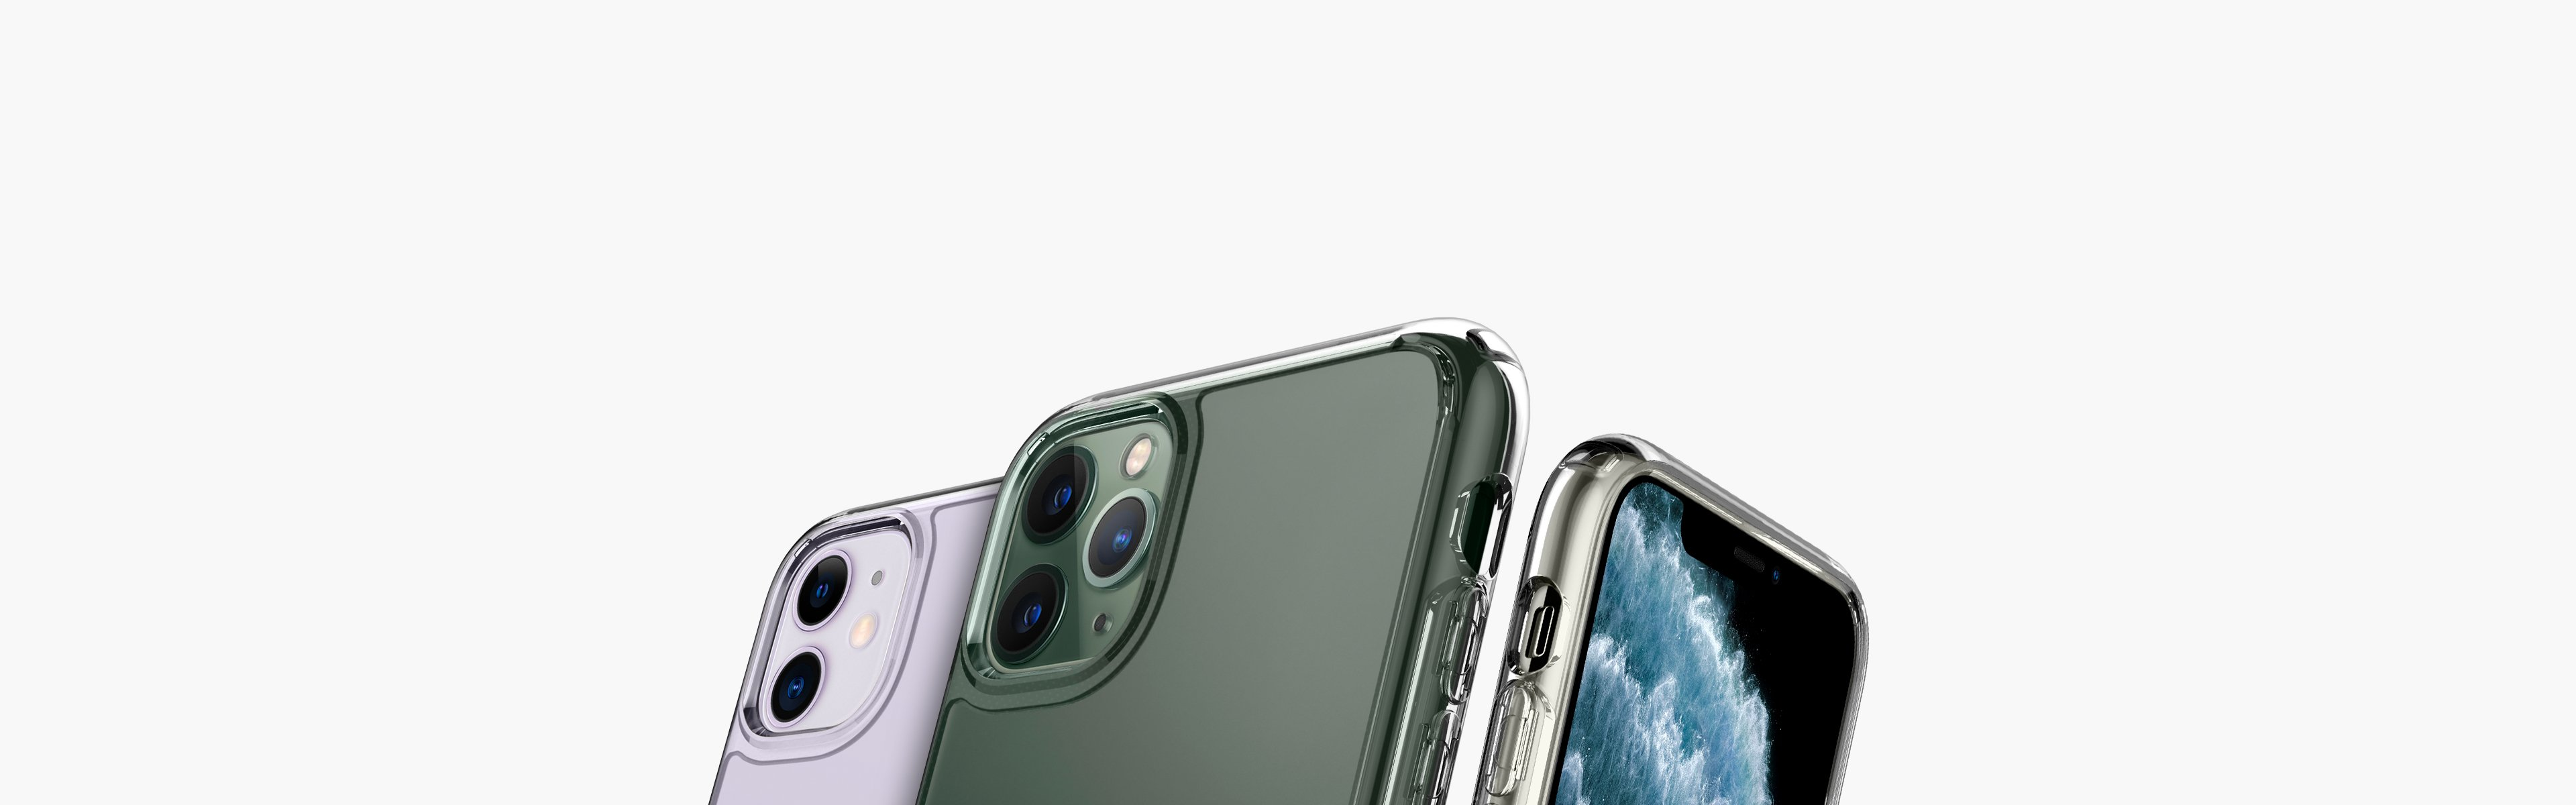 Spaceboy Spigen iPhone 11 Promo